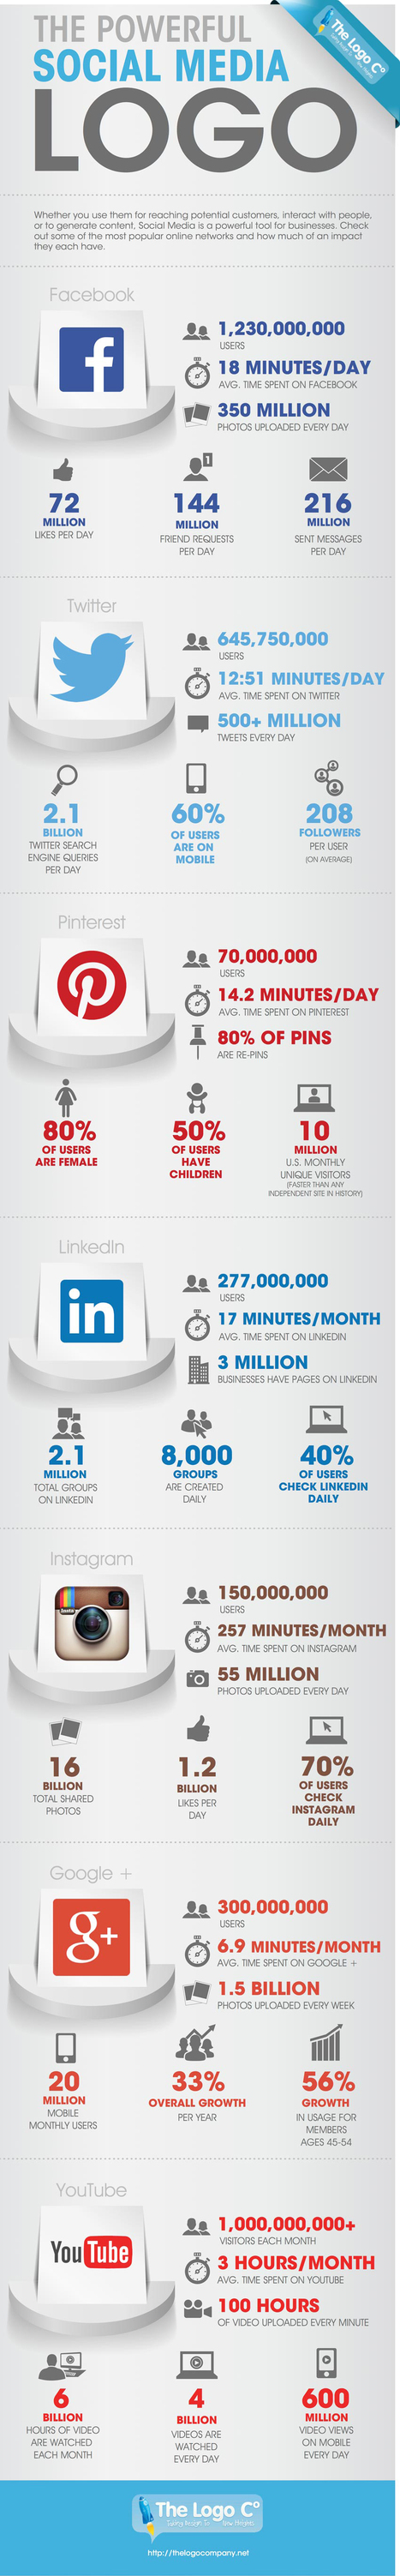 2014: The Numbers Behind Social Media [infographic] | Digital Landscape | Scoop.it